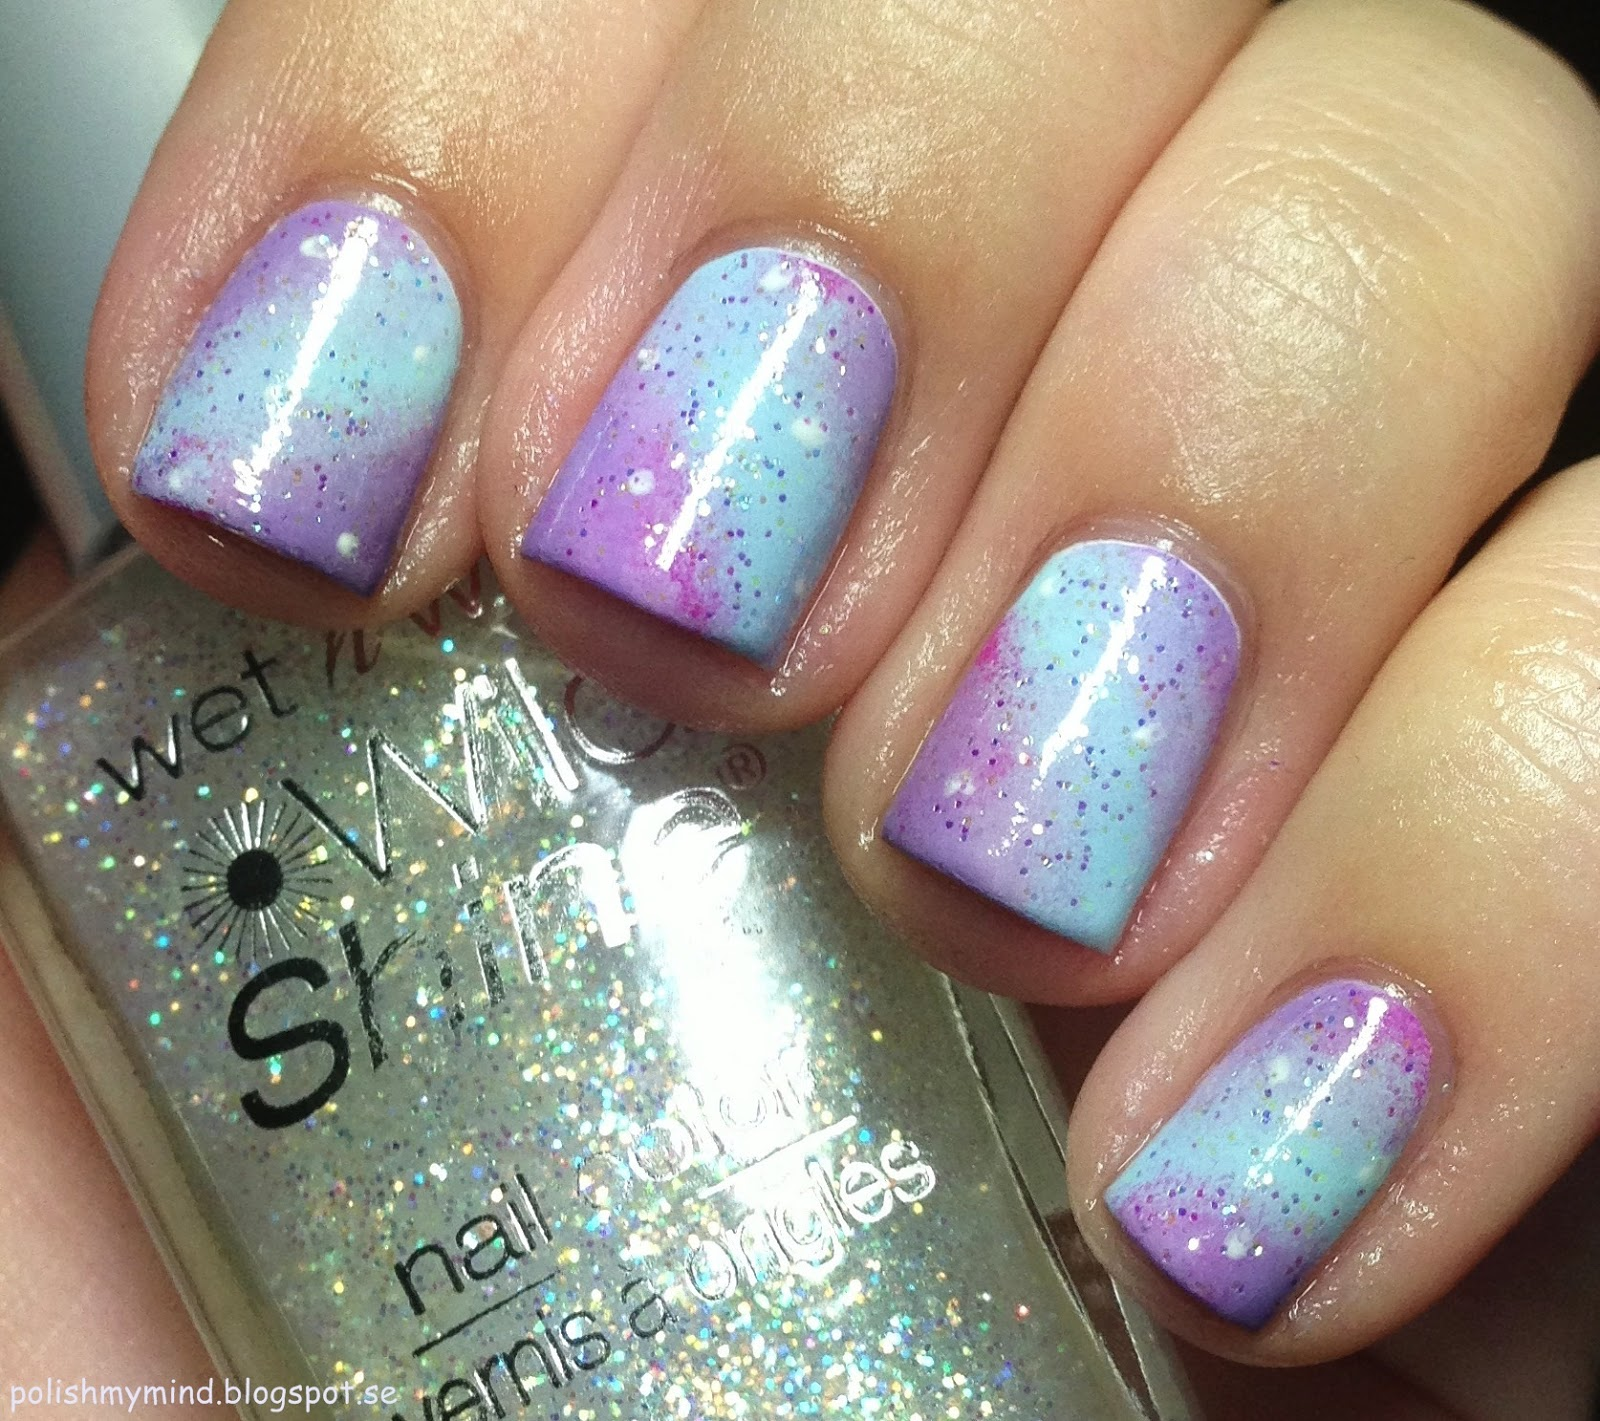 polish my mind: Pastel galaxy nails.